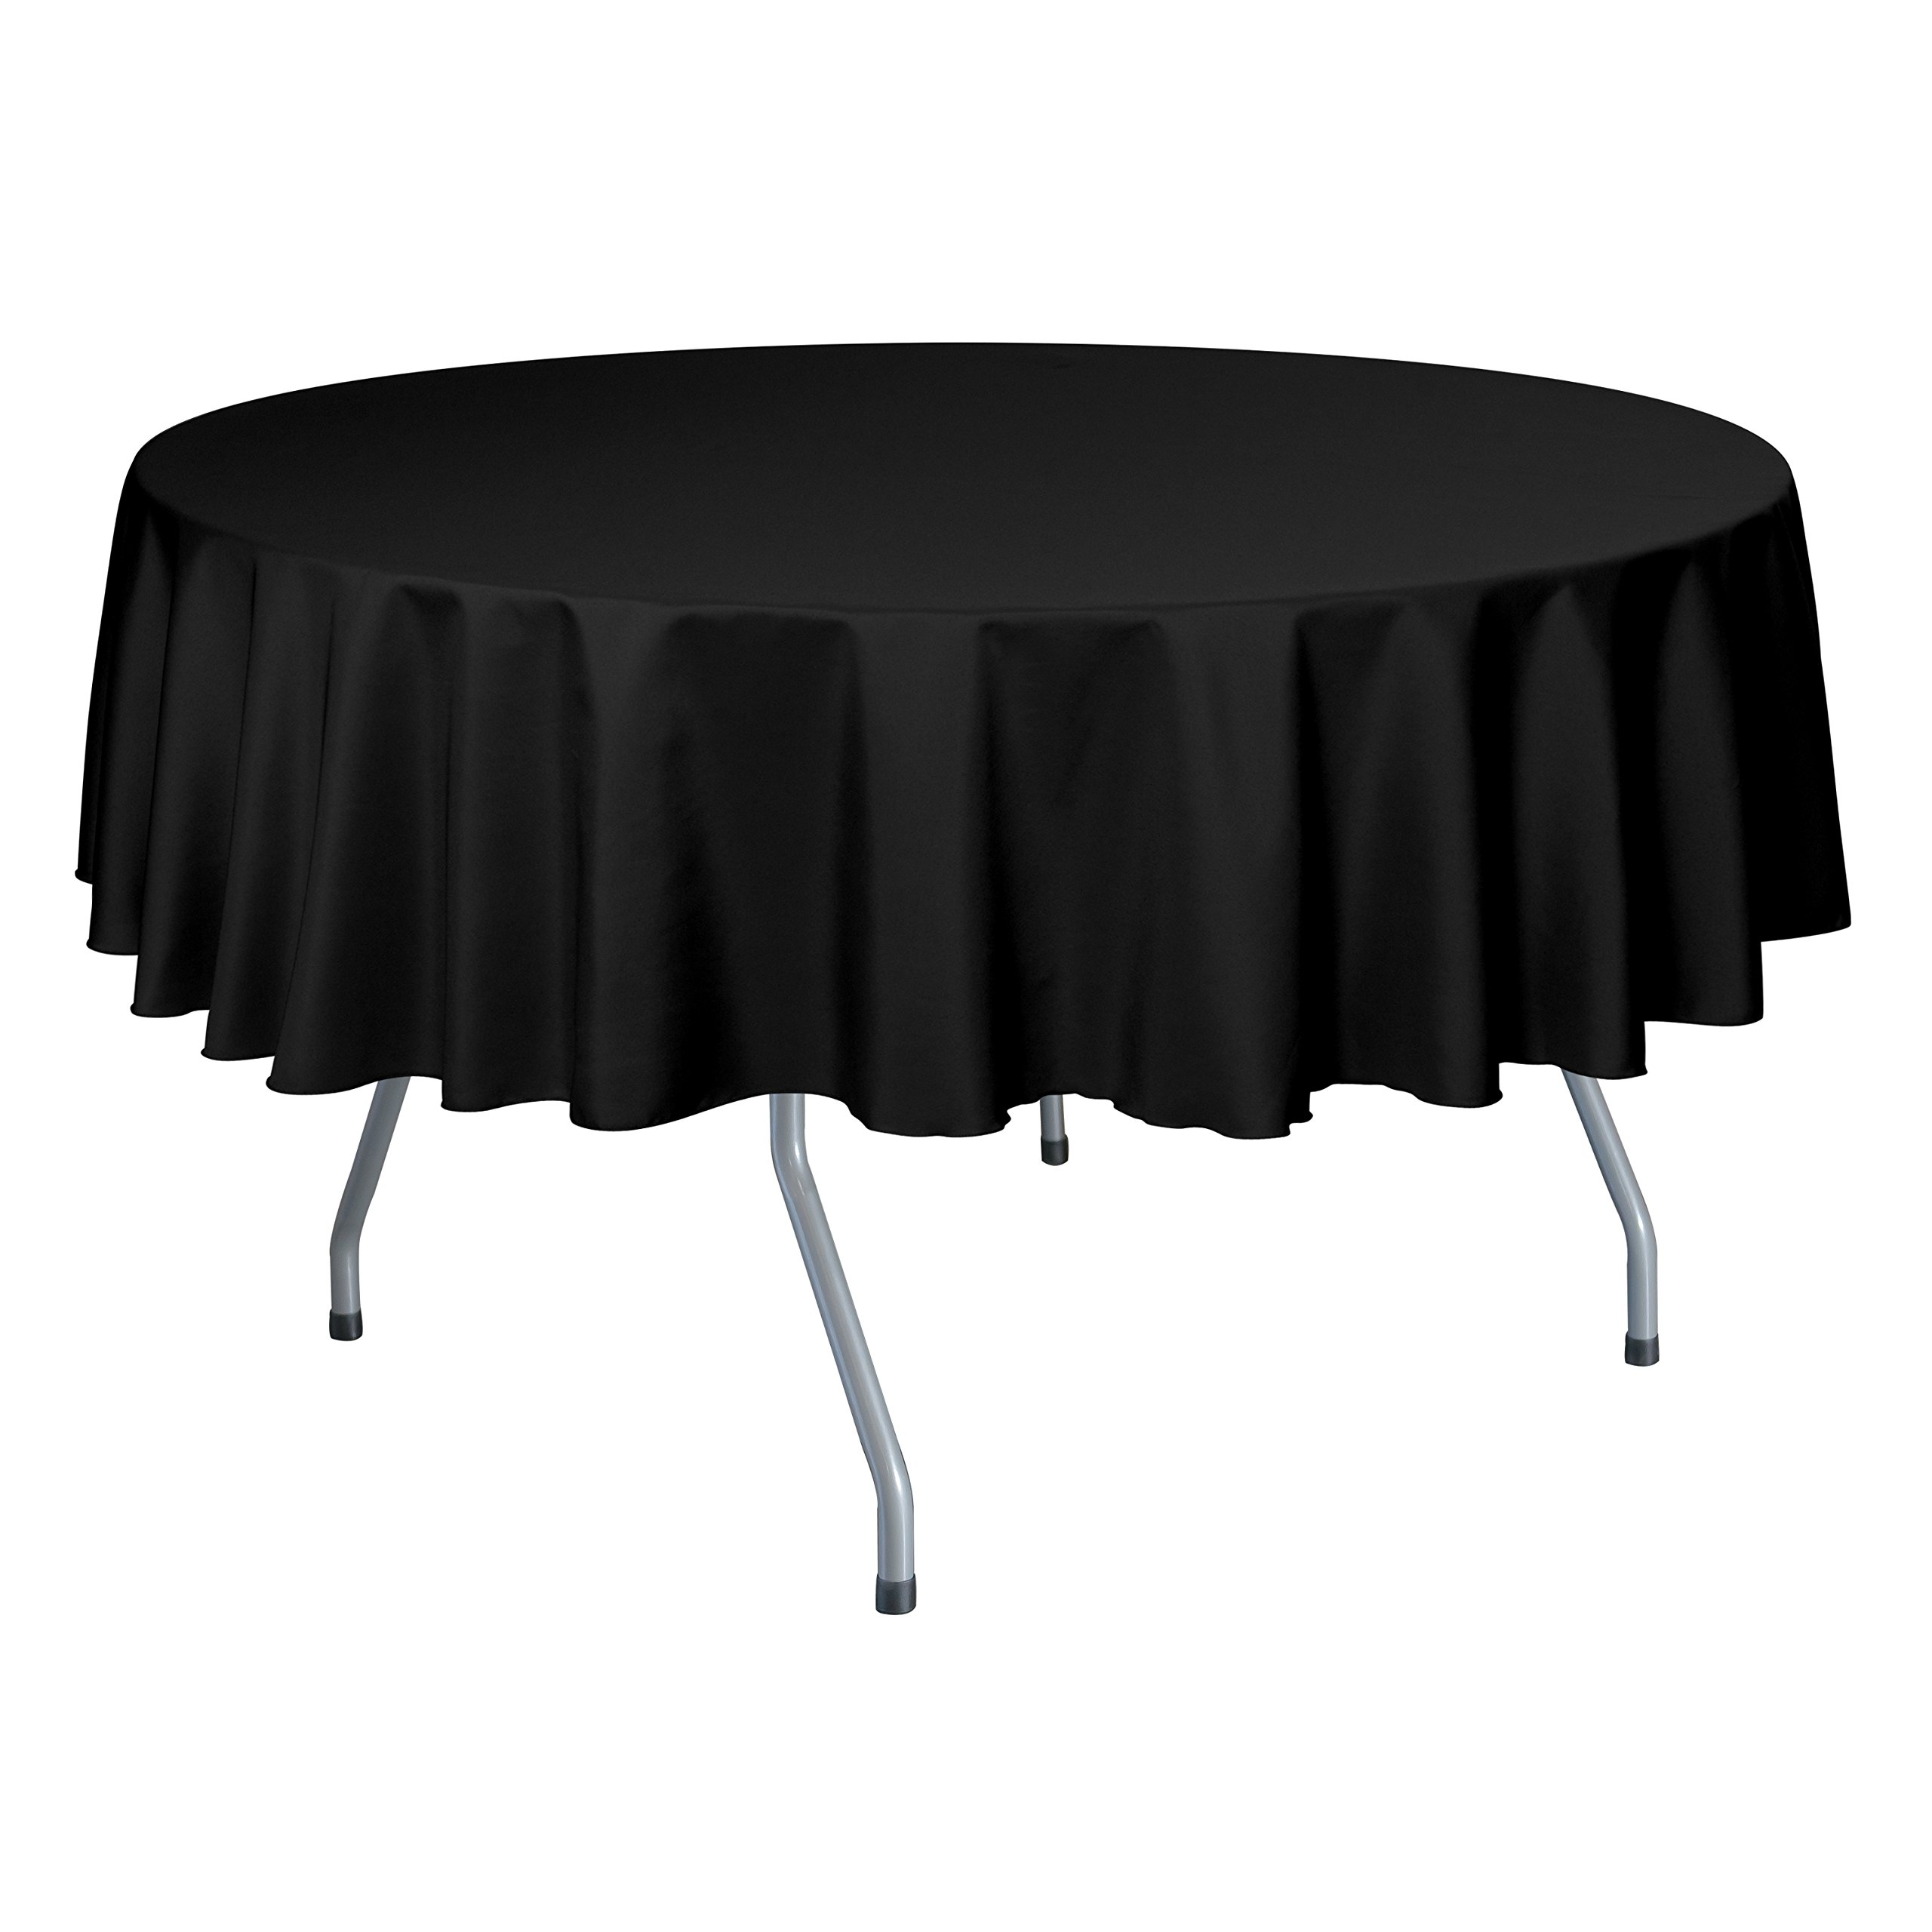 Ultimate Textile (10 Pack) 84-Inch Round Polyester Linen Tablecloth - for Wedding, Restaurant or Banquet use, Black